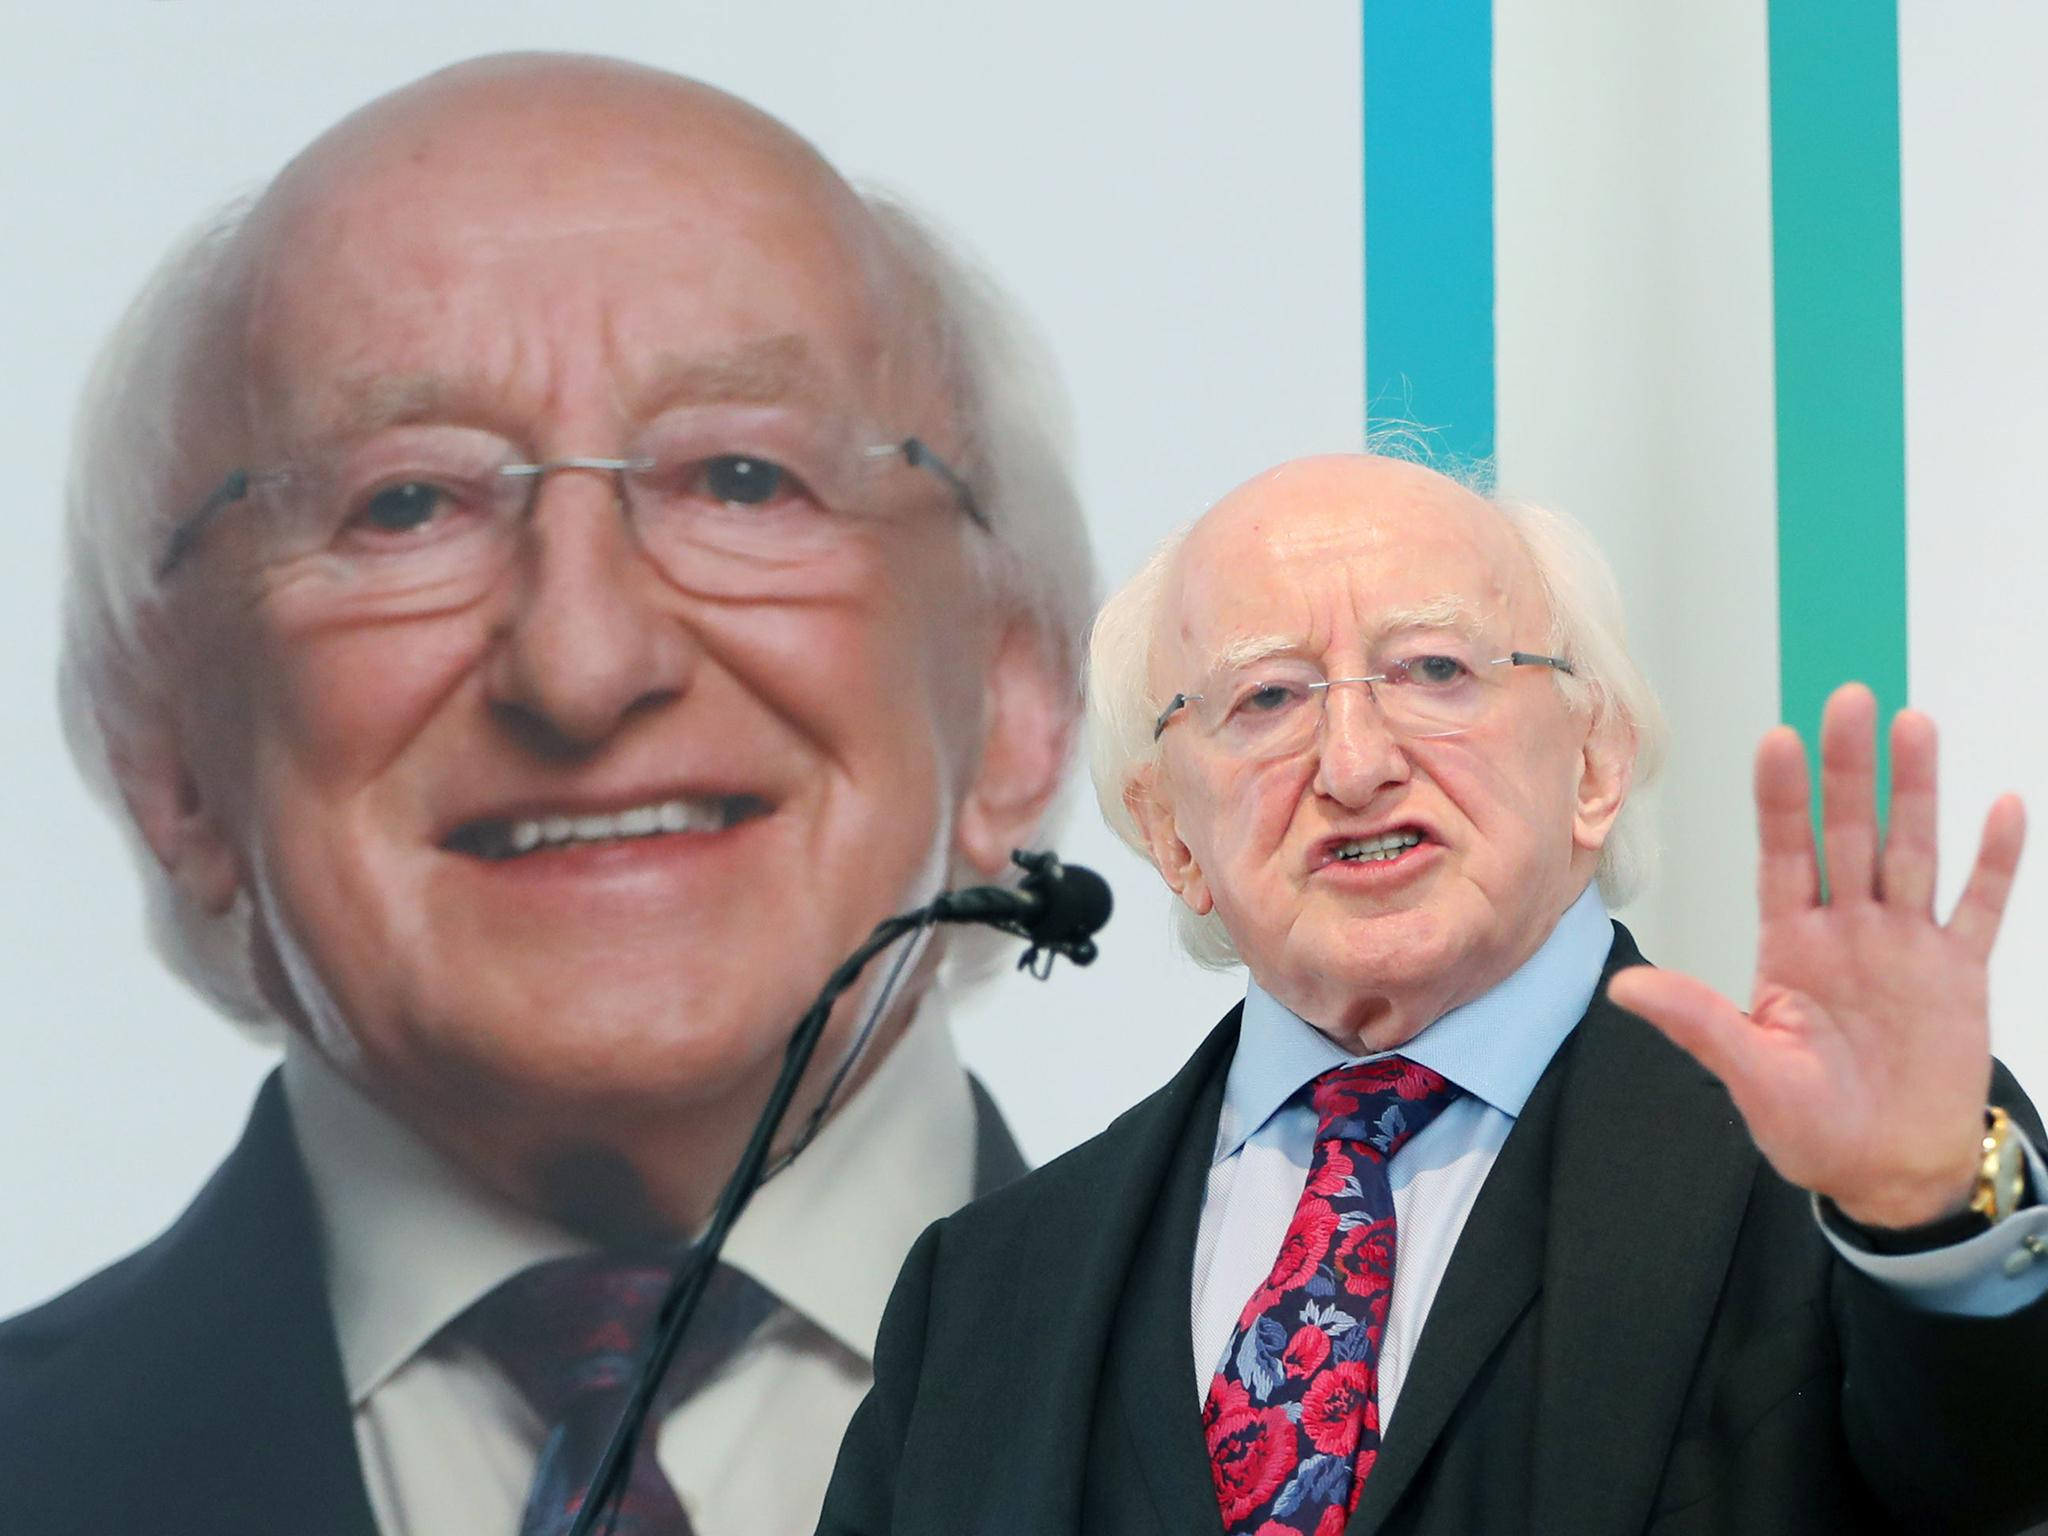 Irish presidential election 2018 michael d higgins on course to win second term with landslide vote